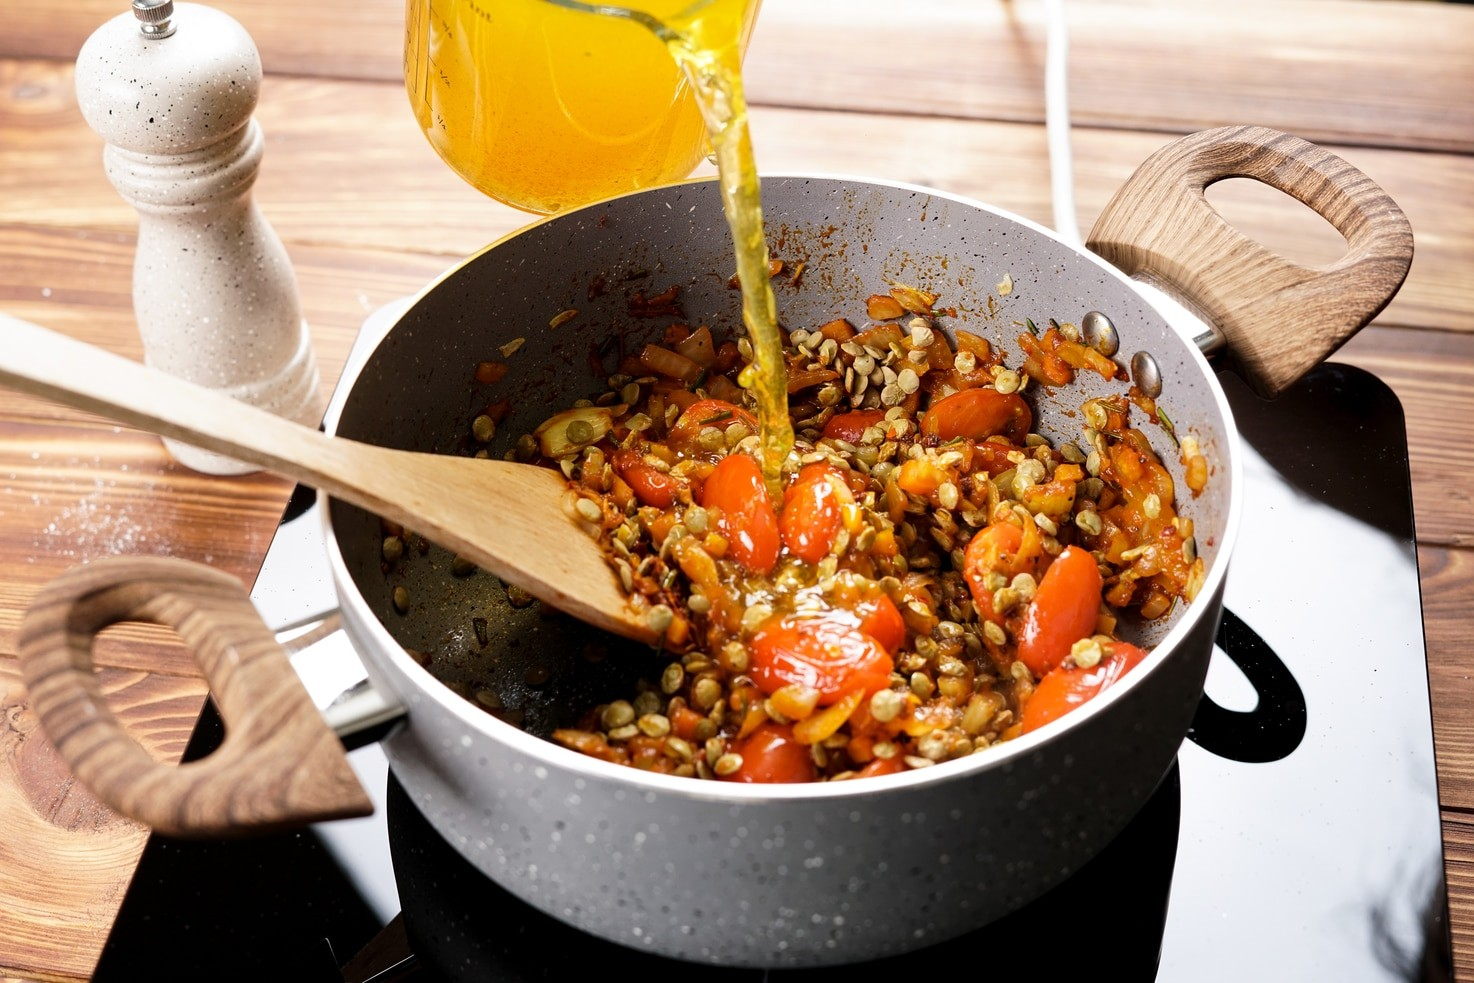 A stage in the preparation of the soup. The pan contains the lentils cherry tomatoes and onion mix, stock is being added. A wooden spoon is in the pan, ready for mixing, and there is a pepper grinder in the background.   Hurry The Food Up